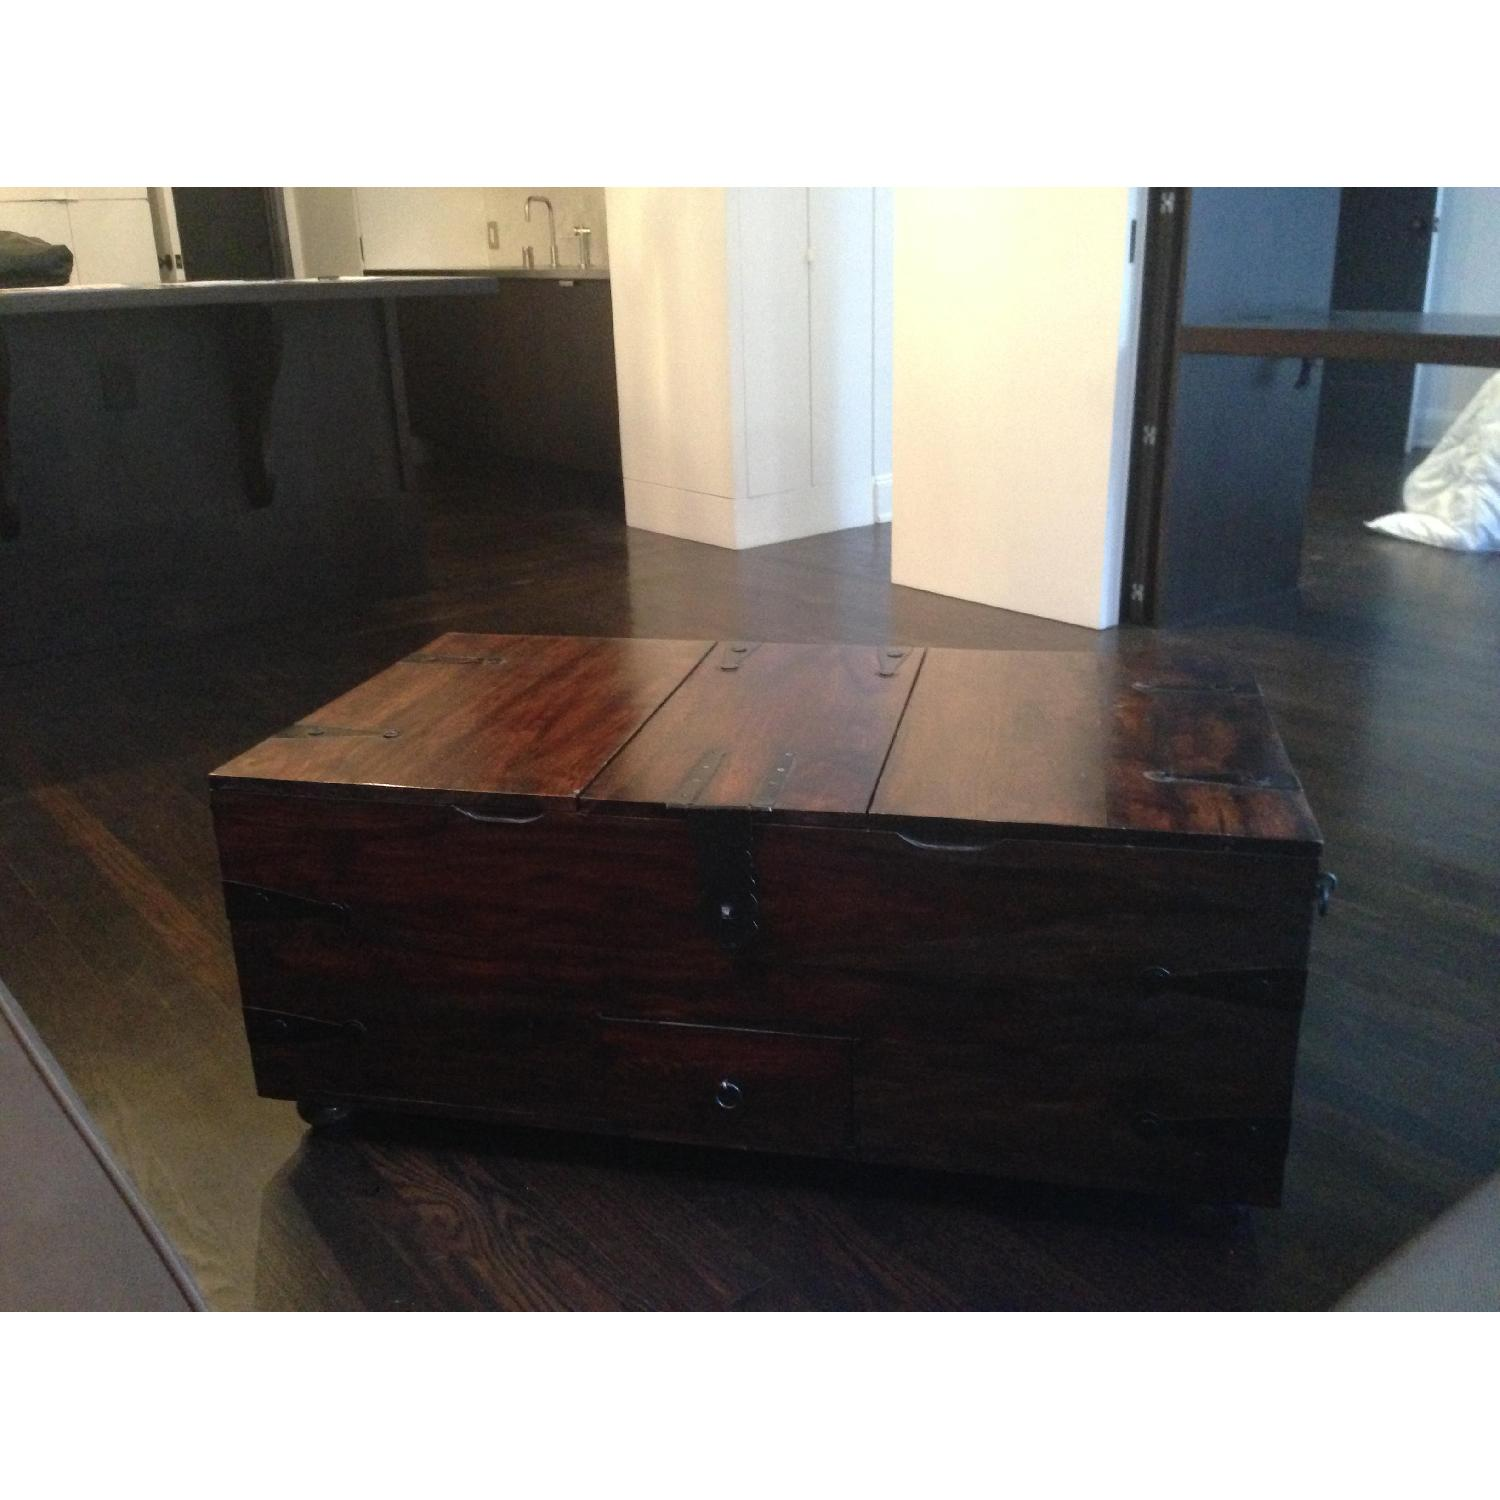 William Sheppee USA Solid Wood Trunk Coffee Table - image-1